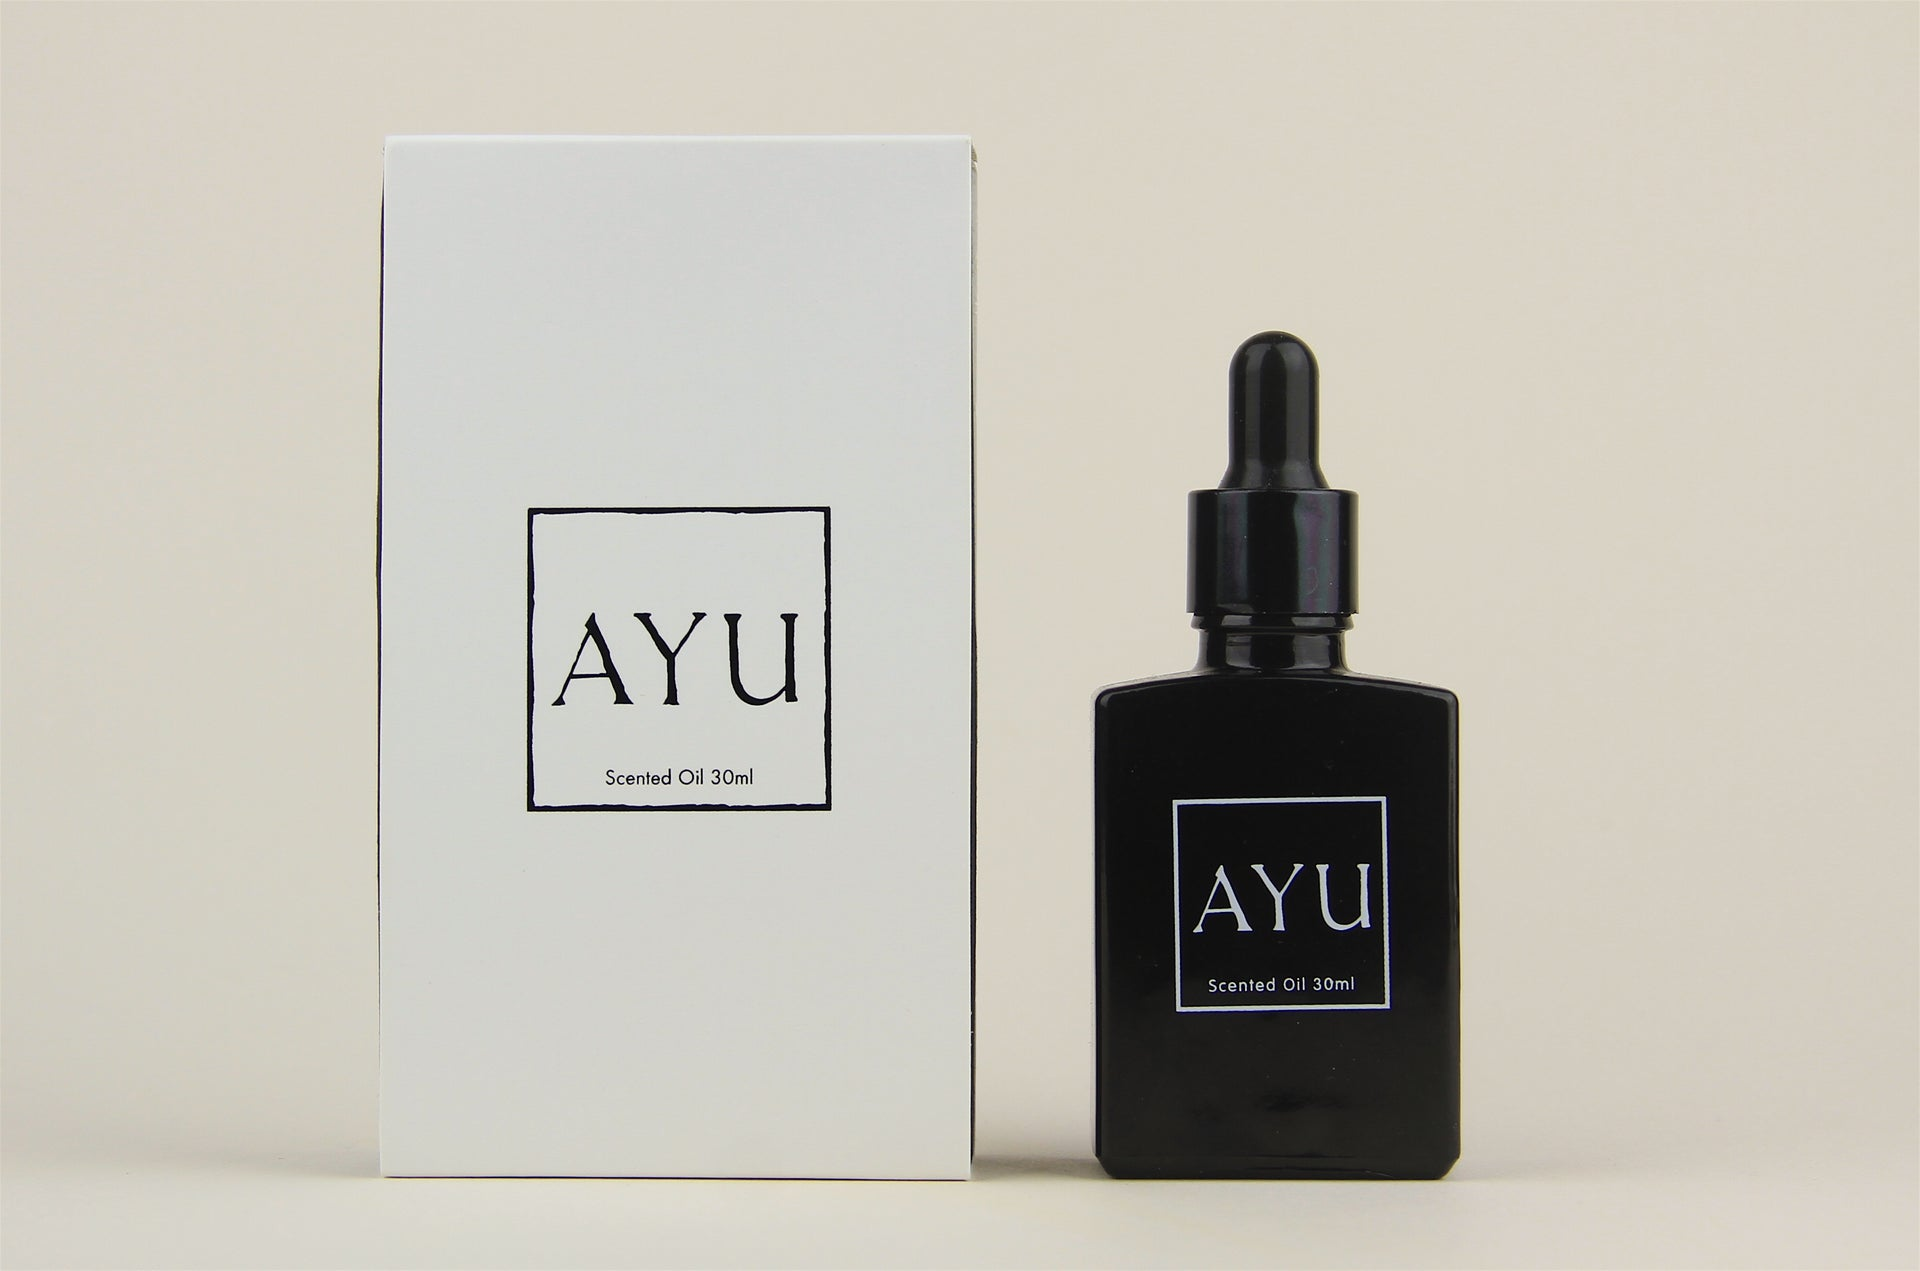 Ayu Scented Oil